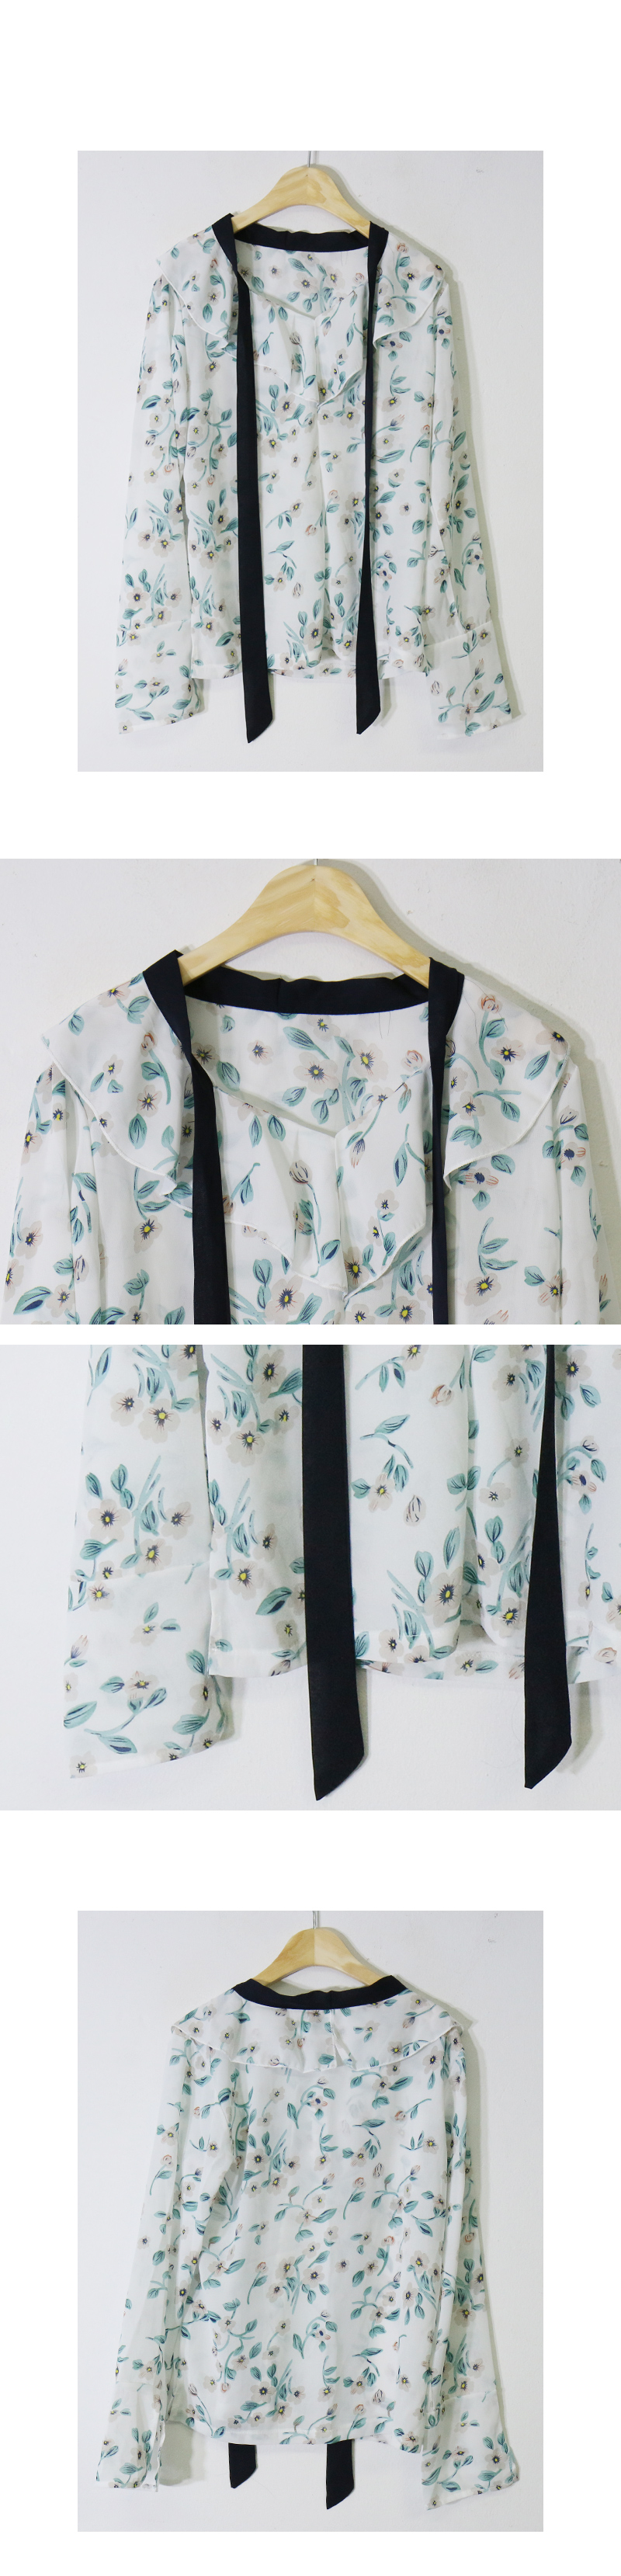 Specials ♥ Emerald Flower Blouse